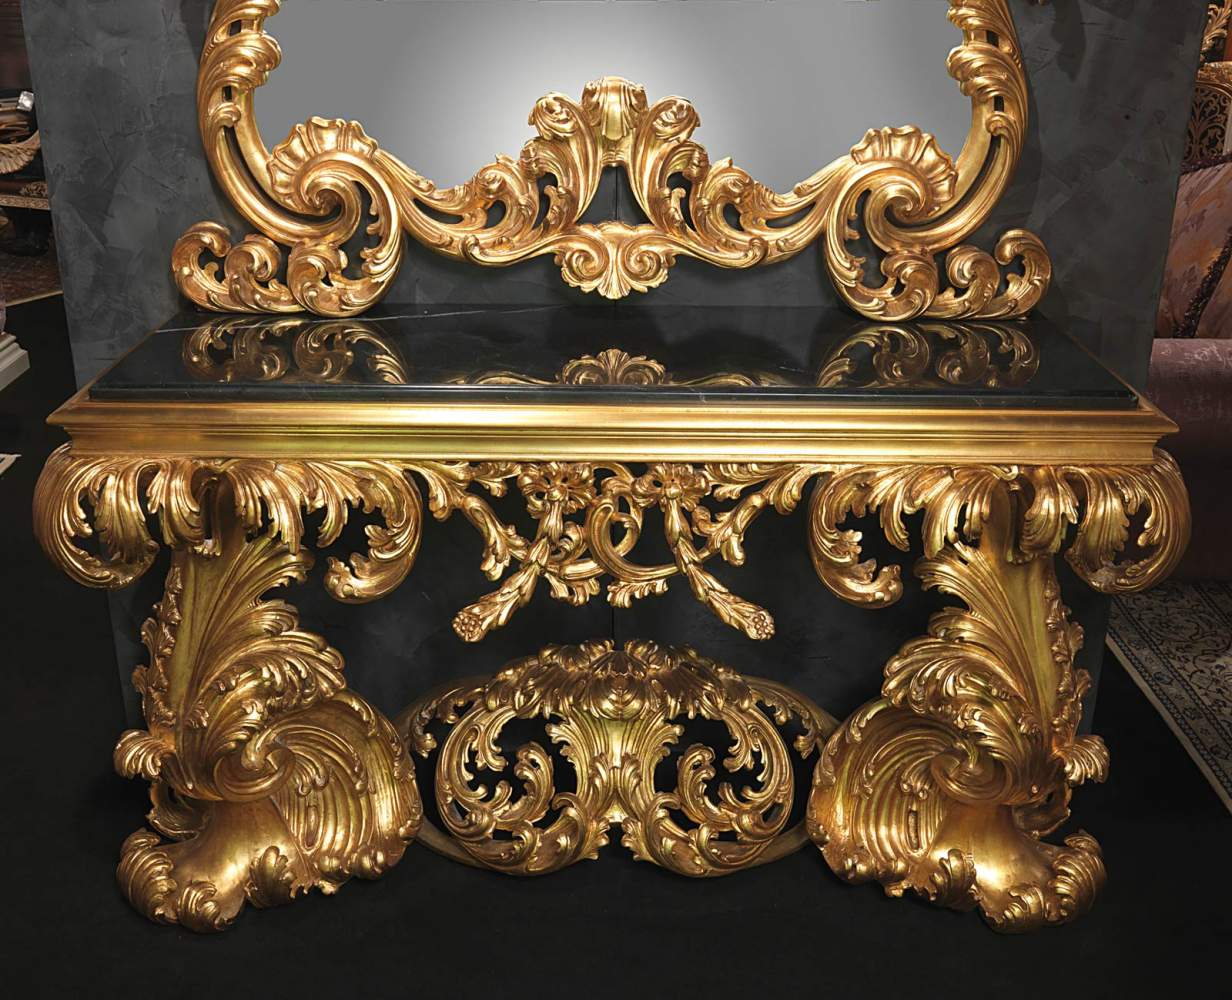 Baroque Italian Console Of The 17th Century With Black